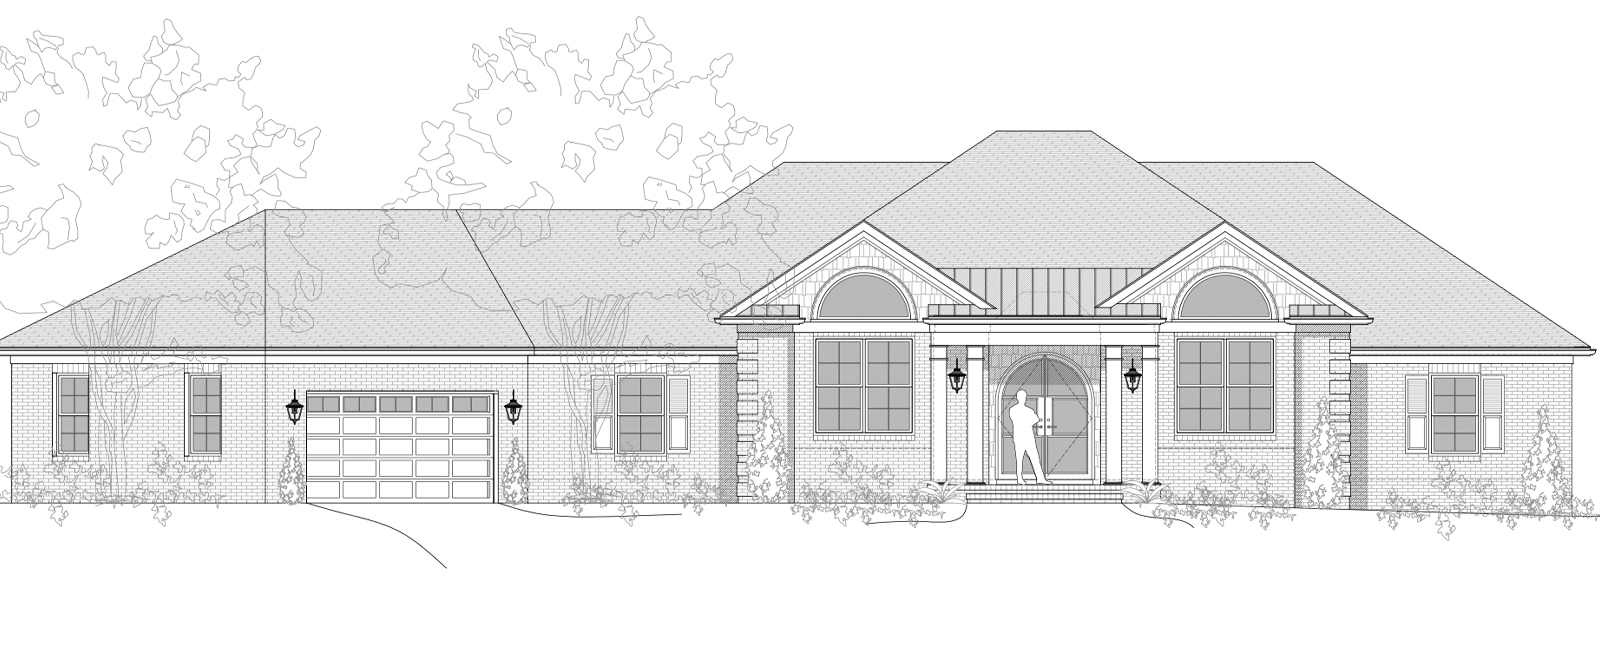 Holmes-4919-A-3-New Elevations-Front&Side